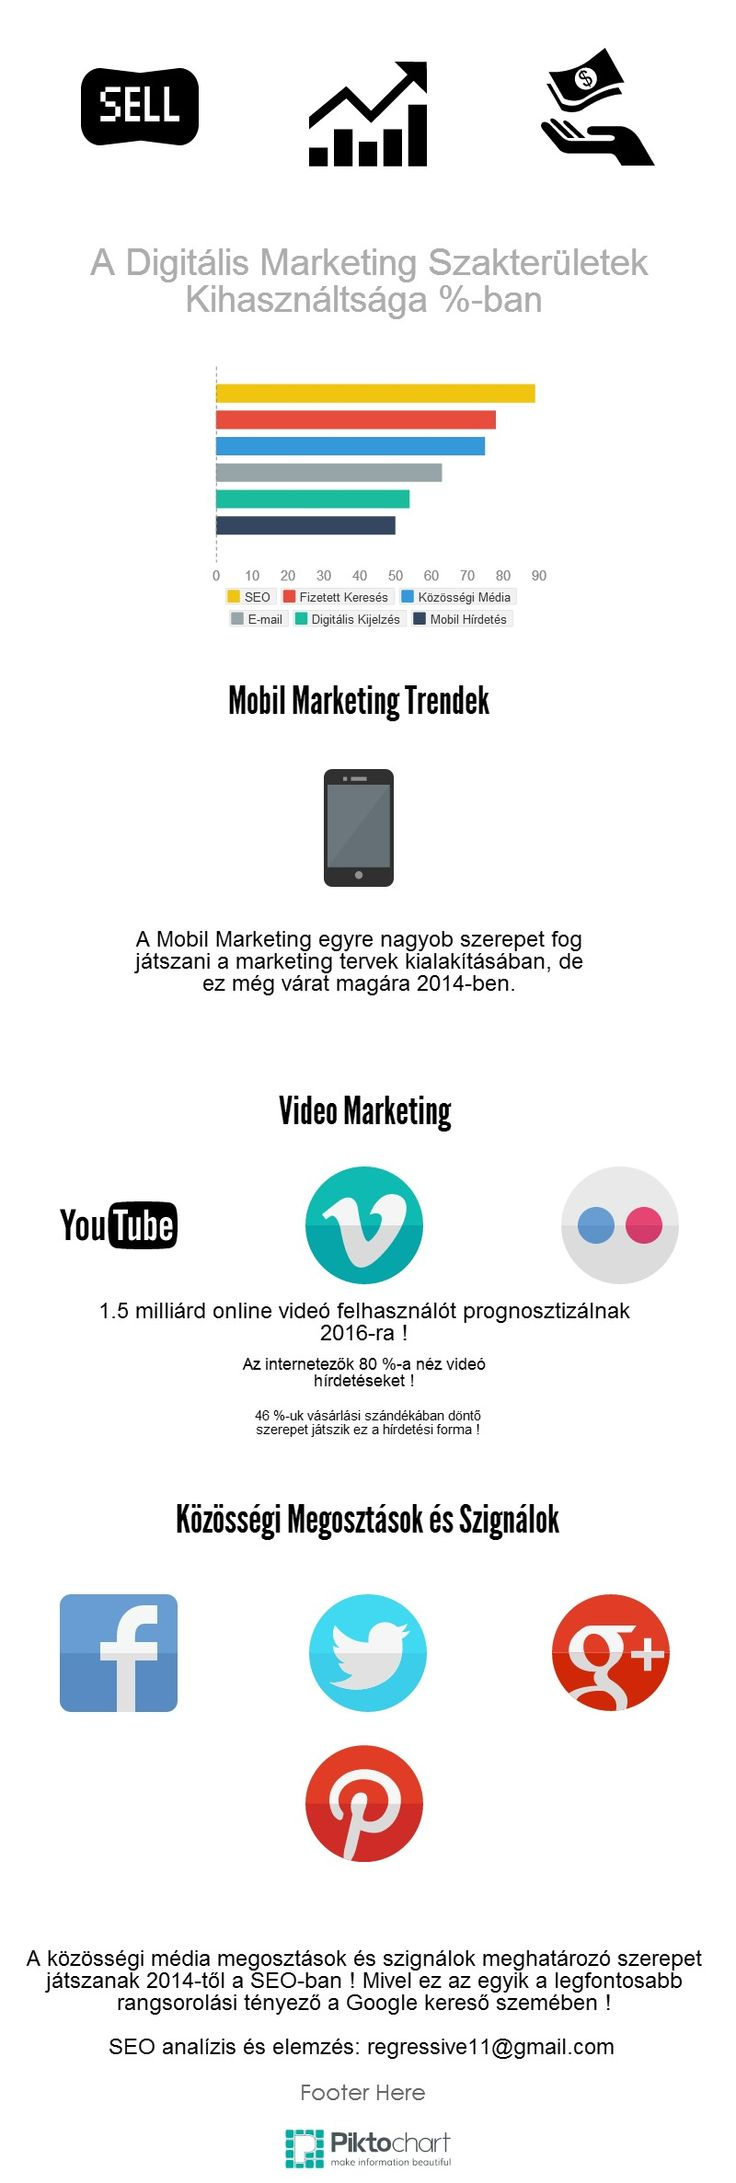 Video Marketing, Social Media Sharing, SEO Infographic in Hungarian